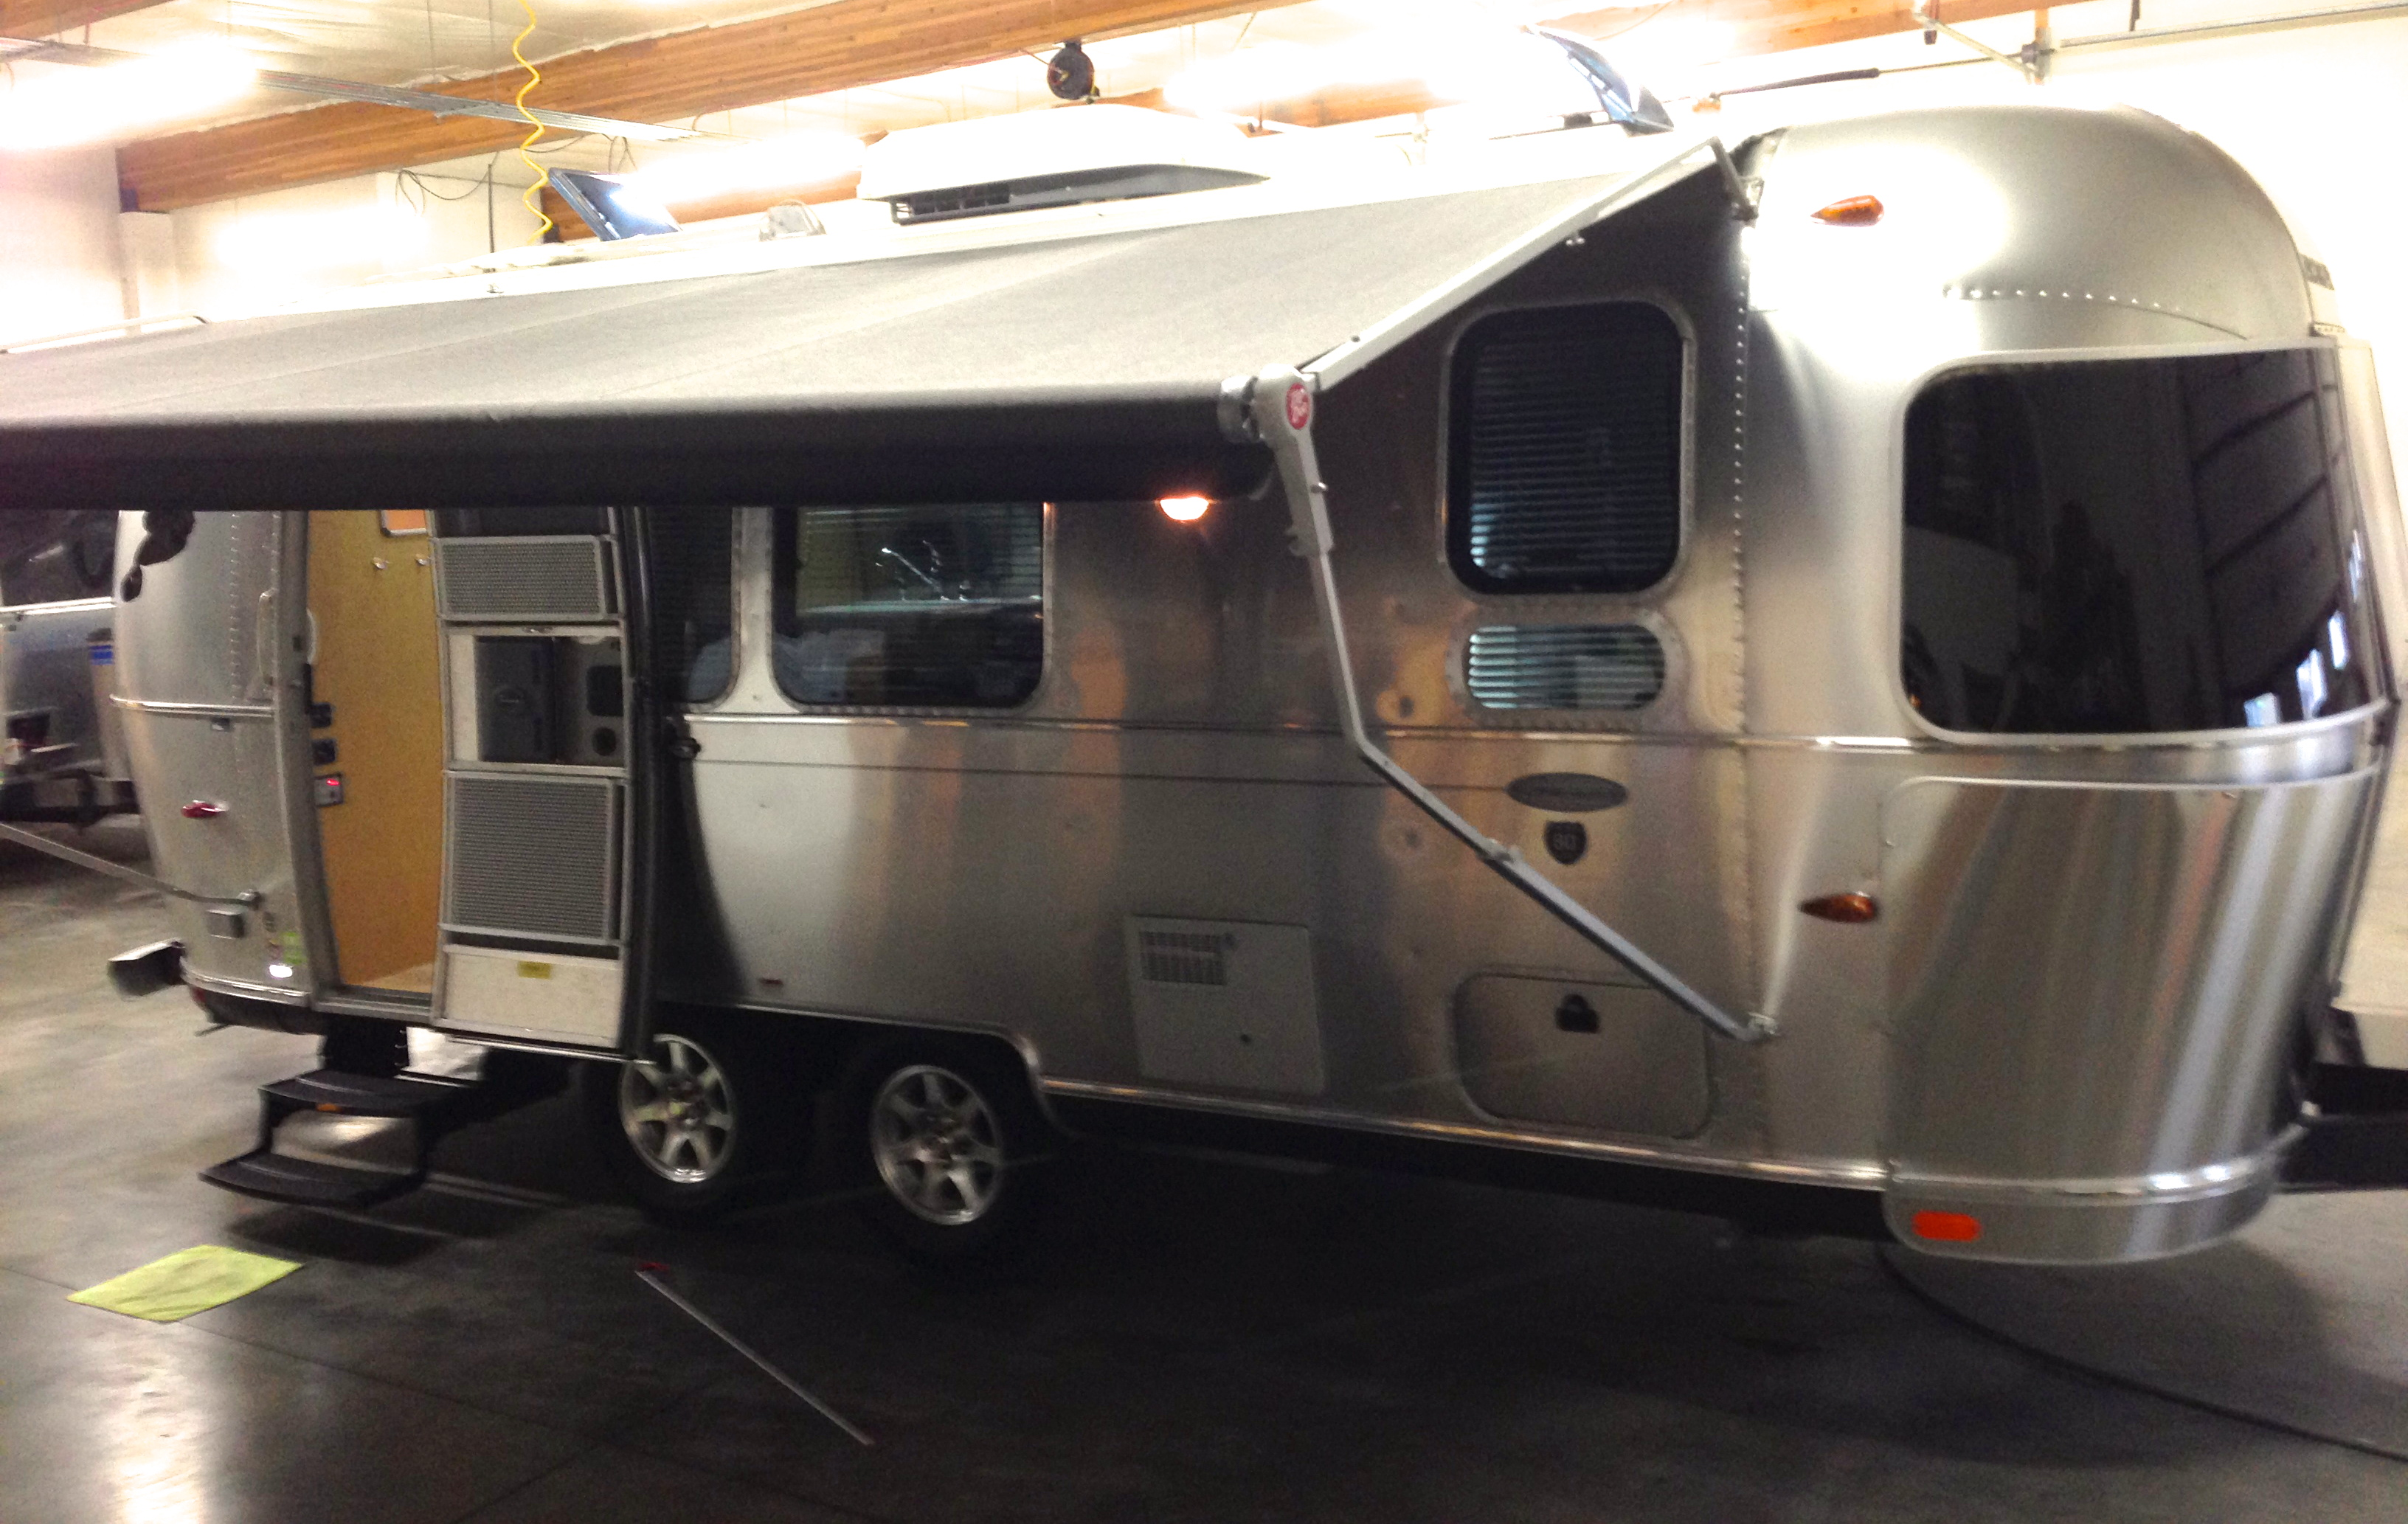 Rv Stove Oven >> Photos of Our New Airstream | Travelin' Light